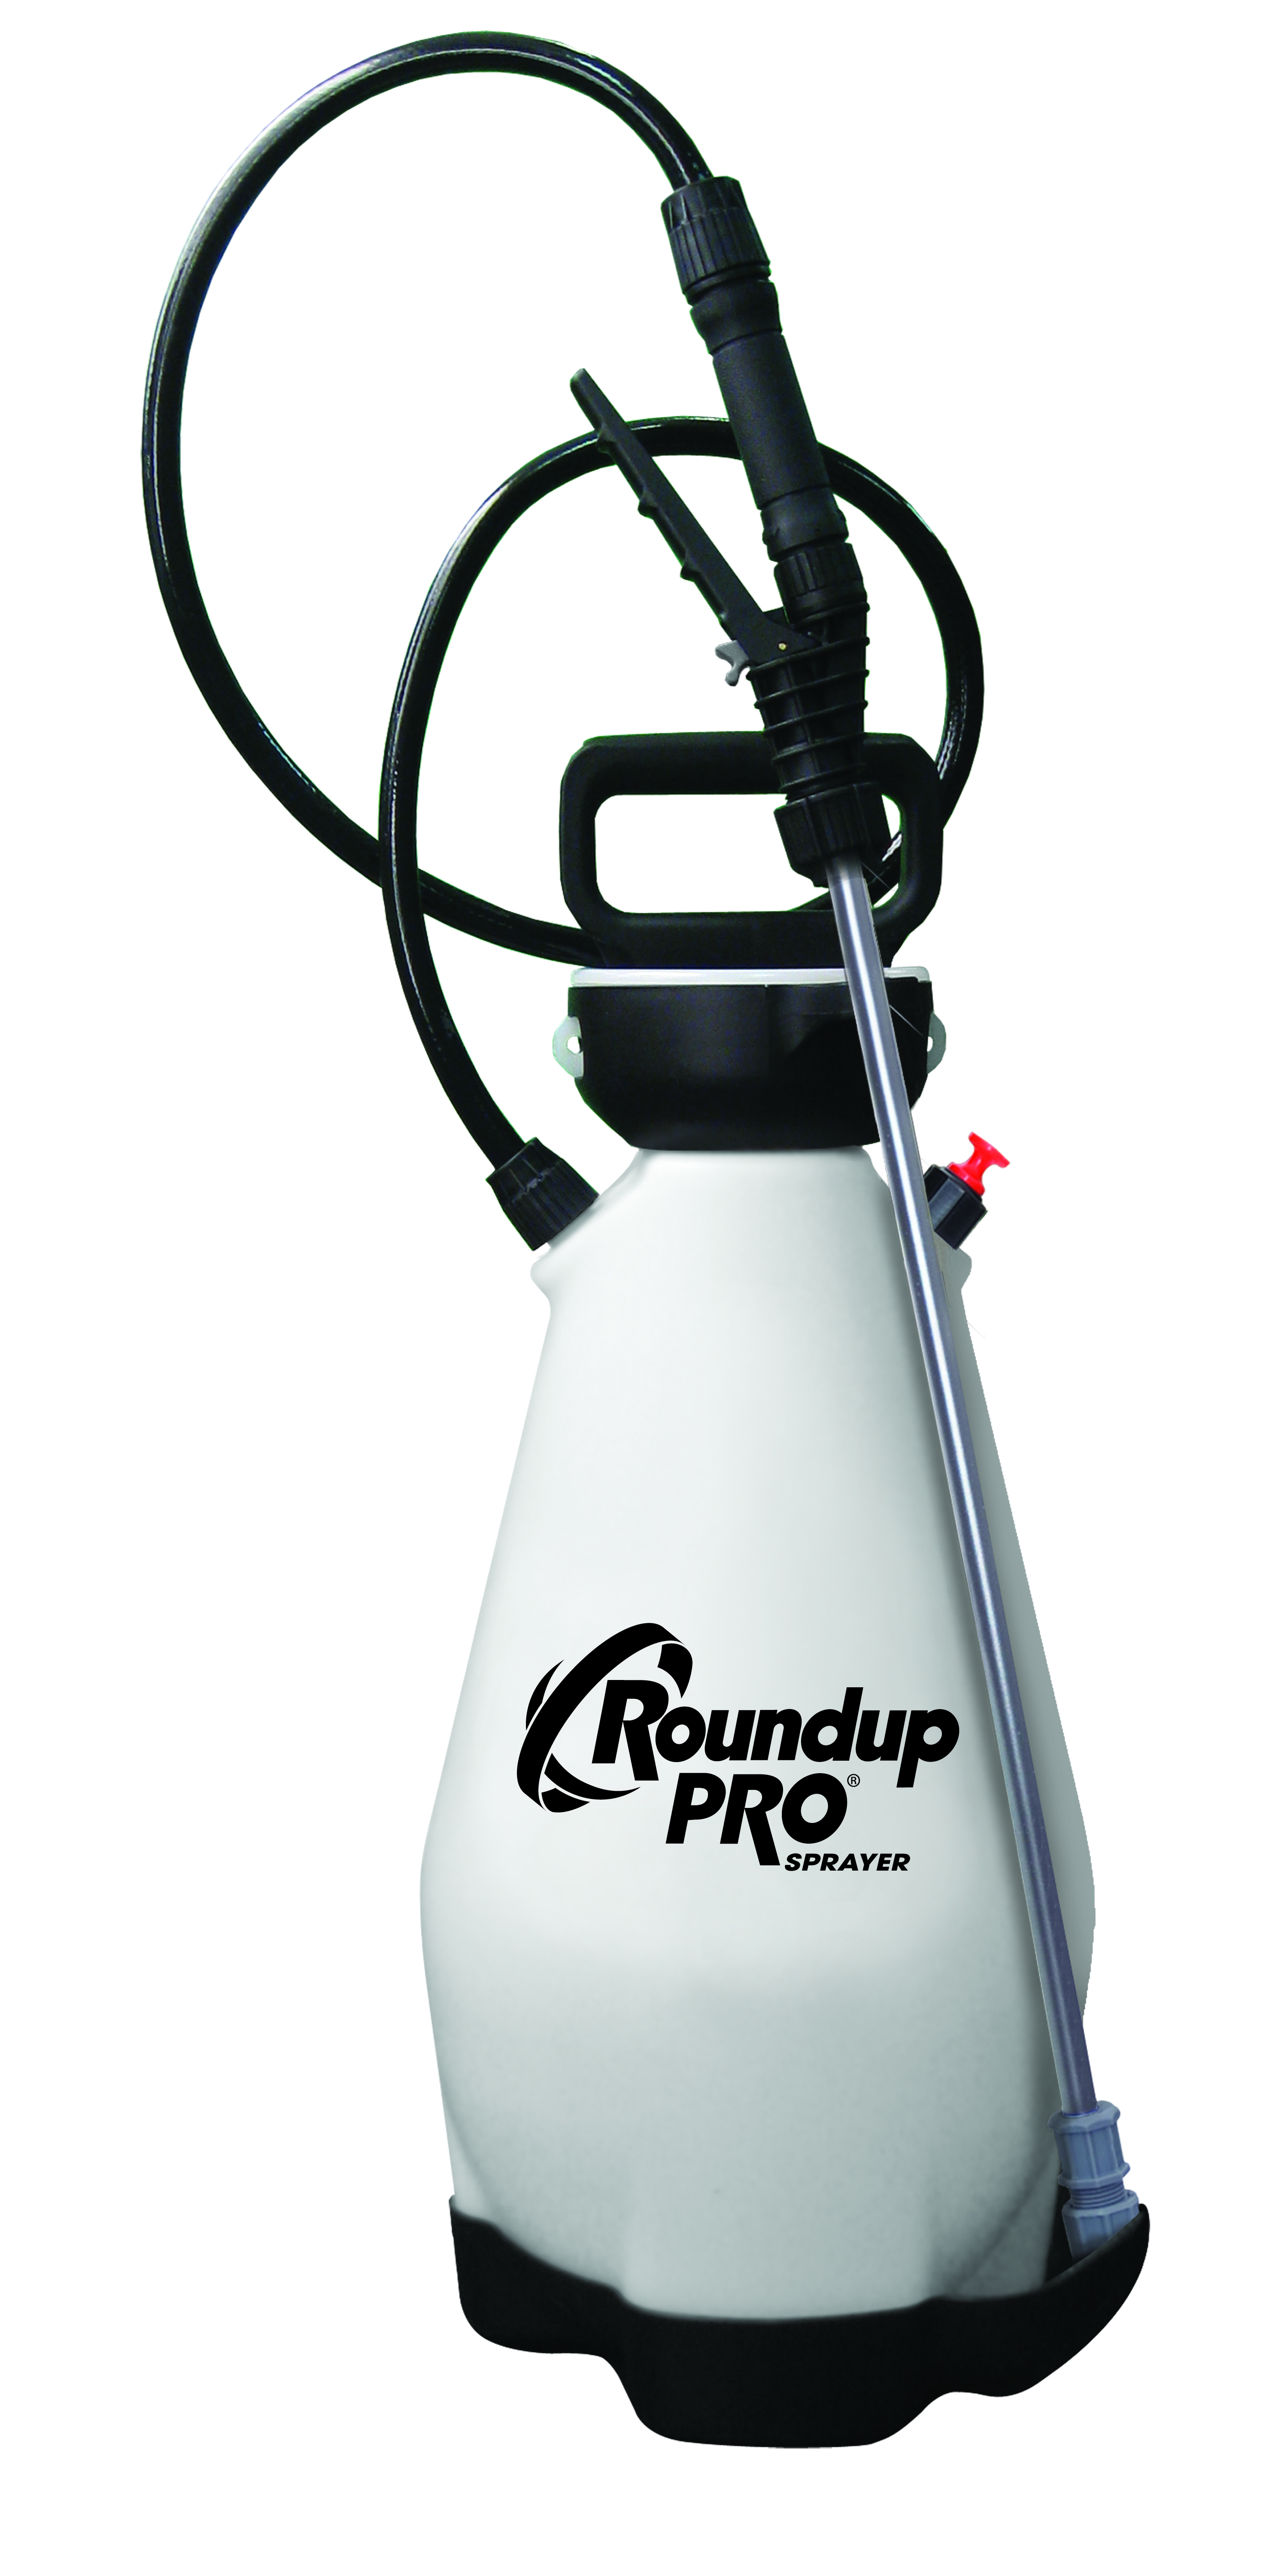 Roundup Pro Sprayer For Commercial Use